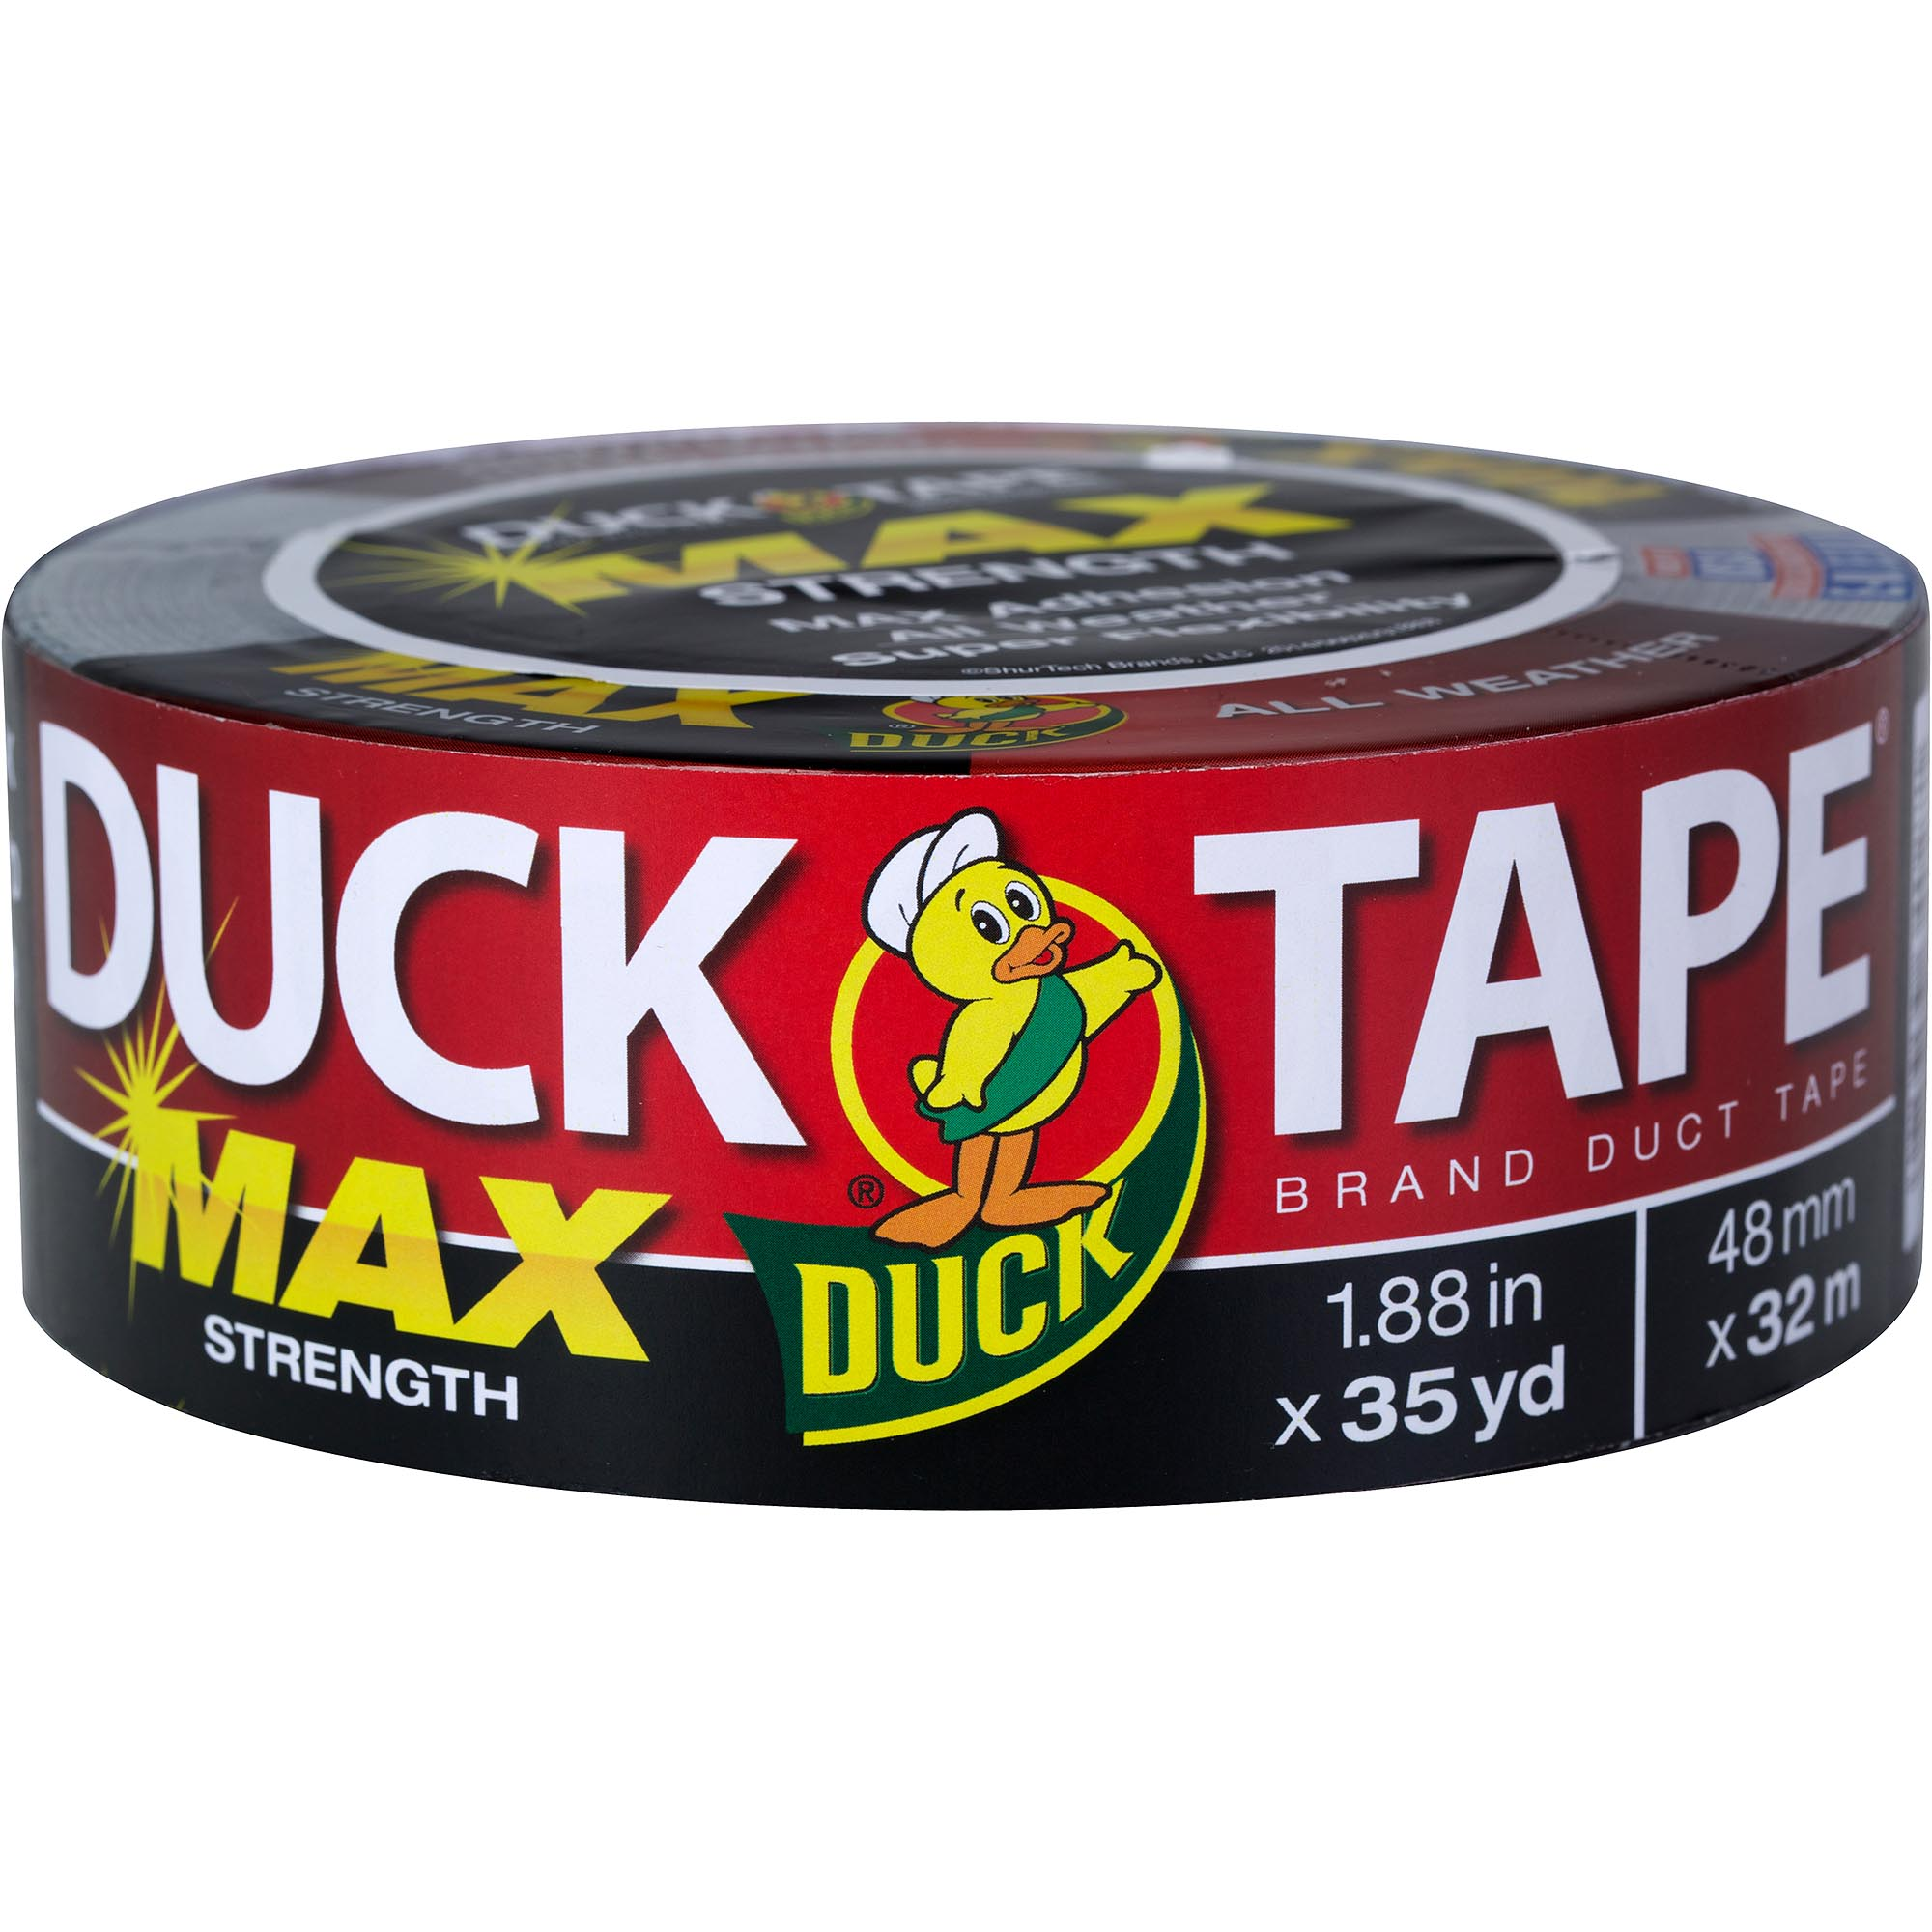 "Duck Brand Duct Tape, Max Strength, 1.88"" x 35 yds, Black"